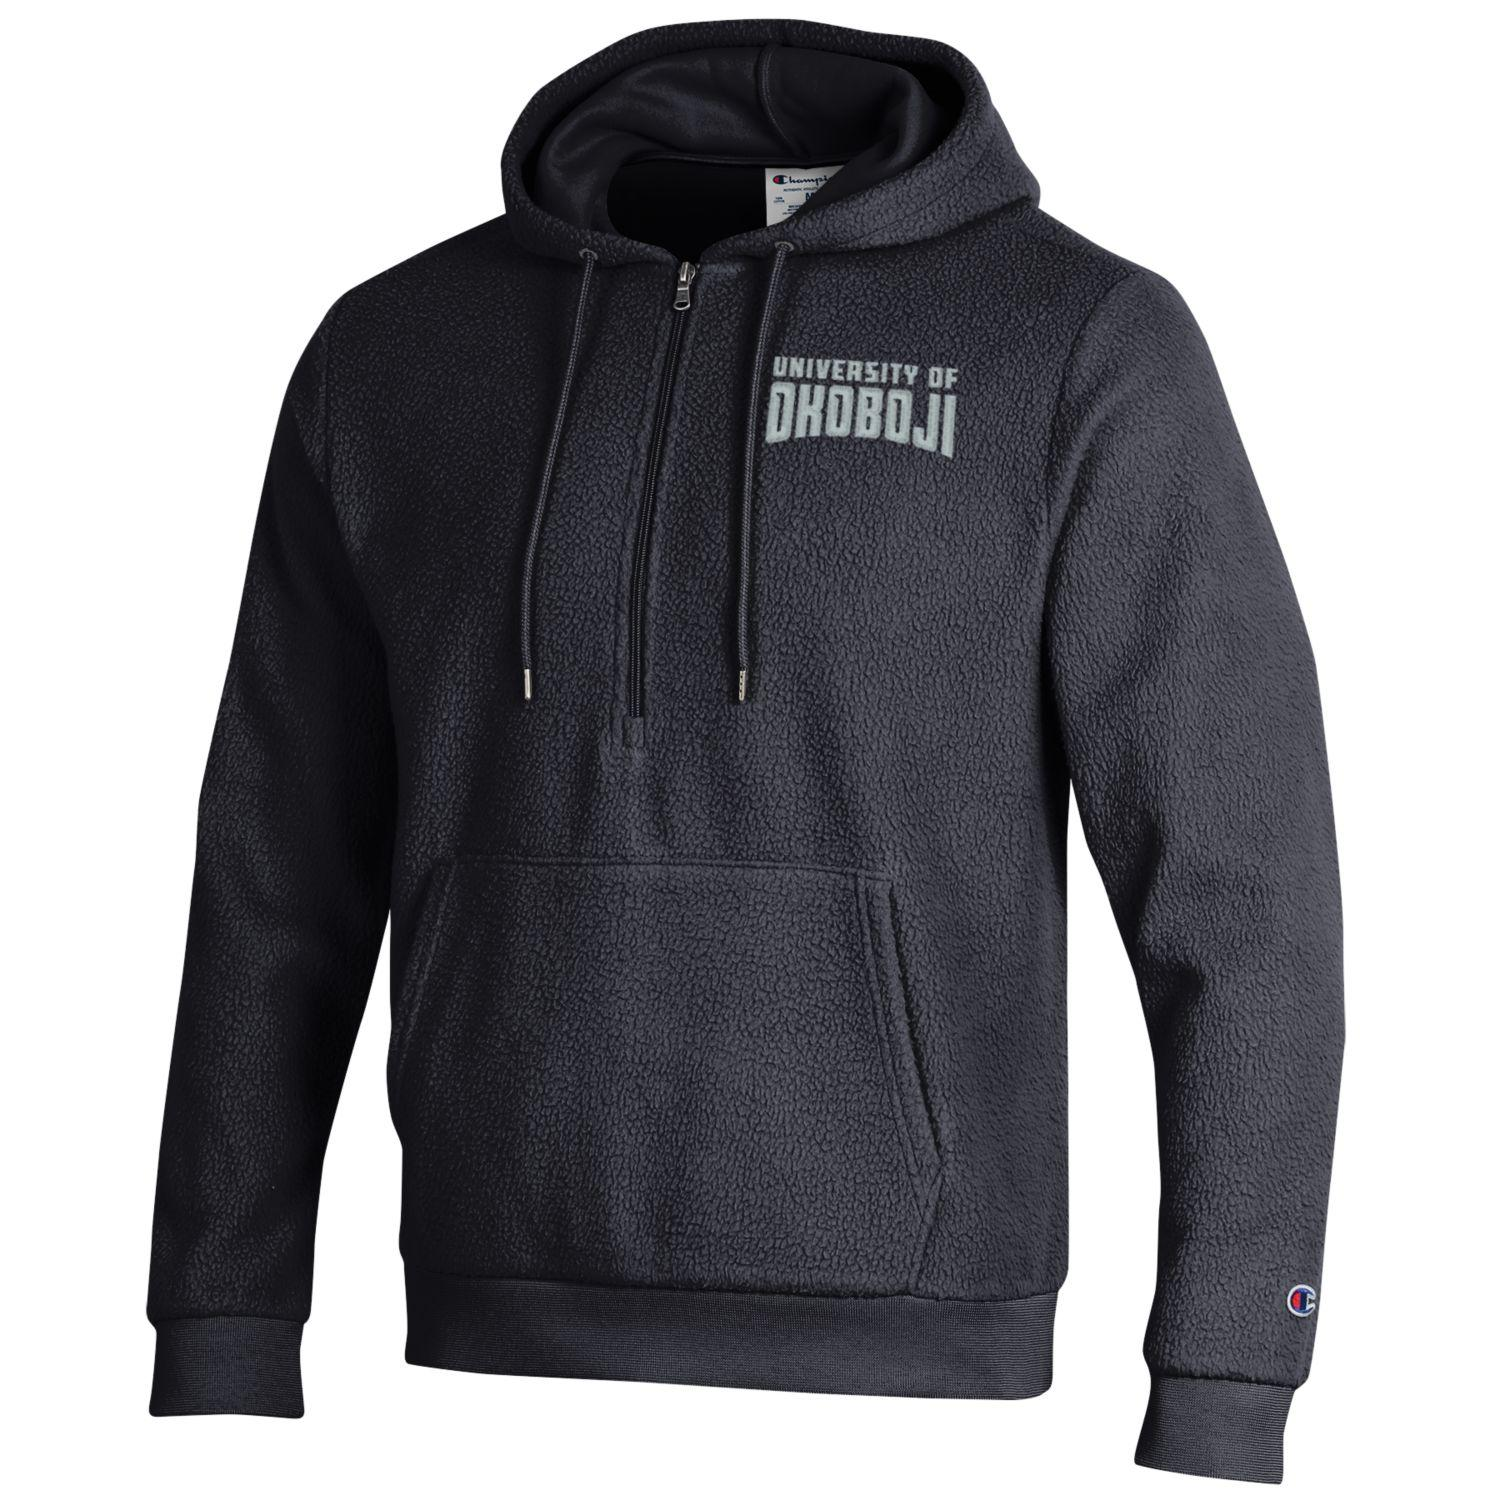 U of Okoboji Sherpa 1/4 Zip Hood - Black